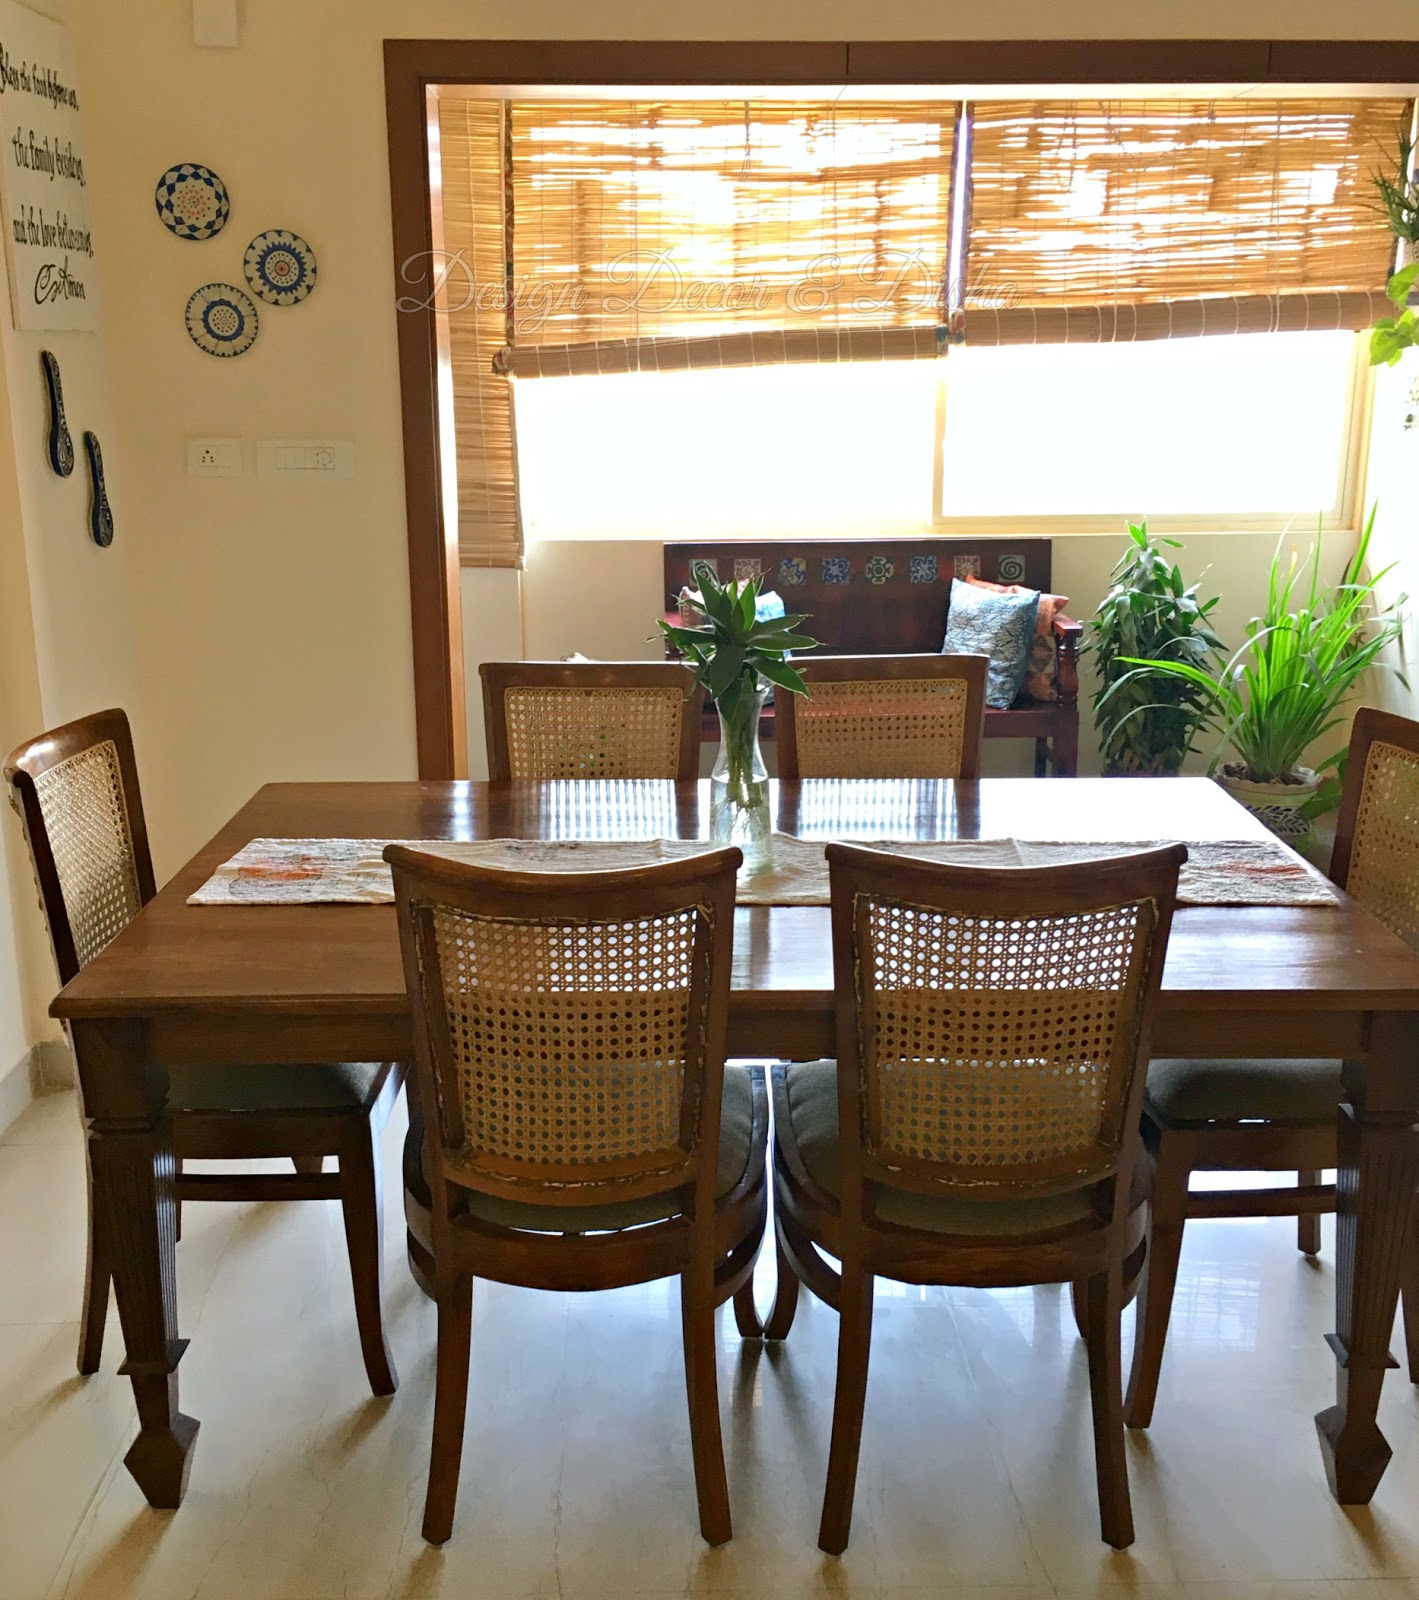 Colonial Dining Room: An Indian Design & Decor Blog